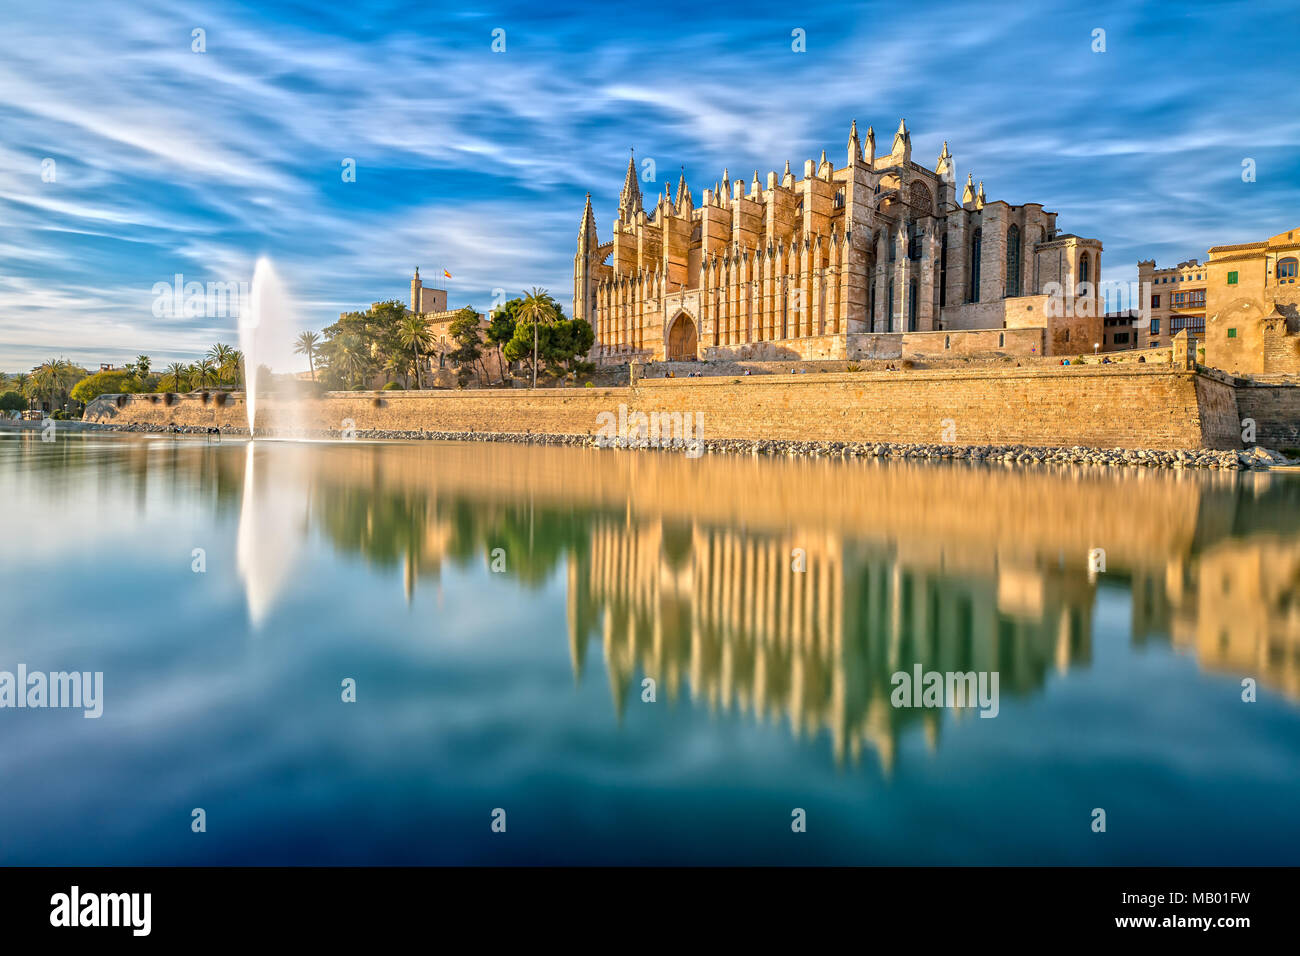 The Cathedral La Seu in Palma de Mallorca - Stock Image